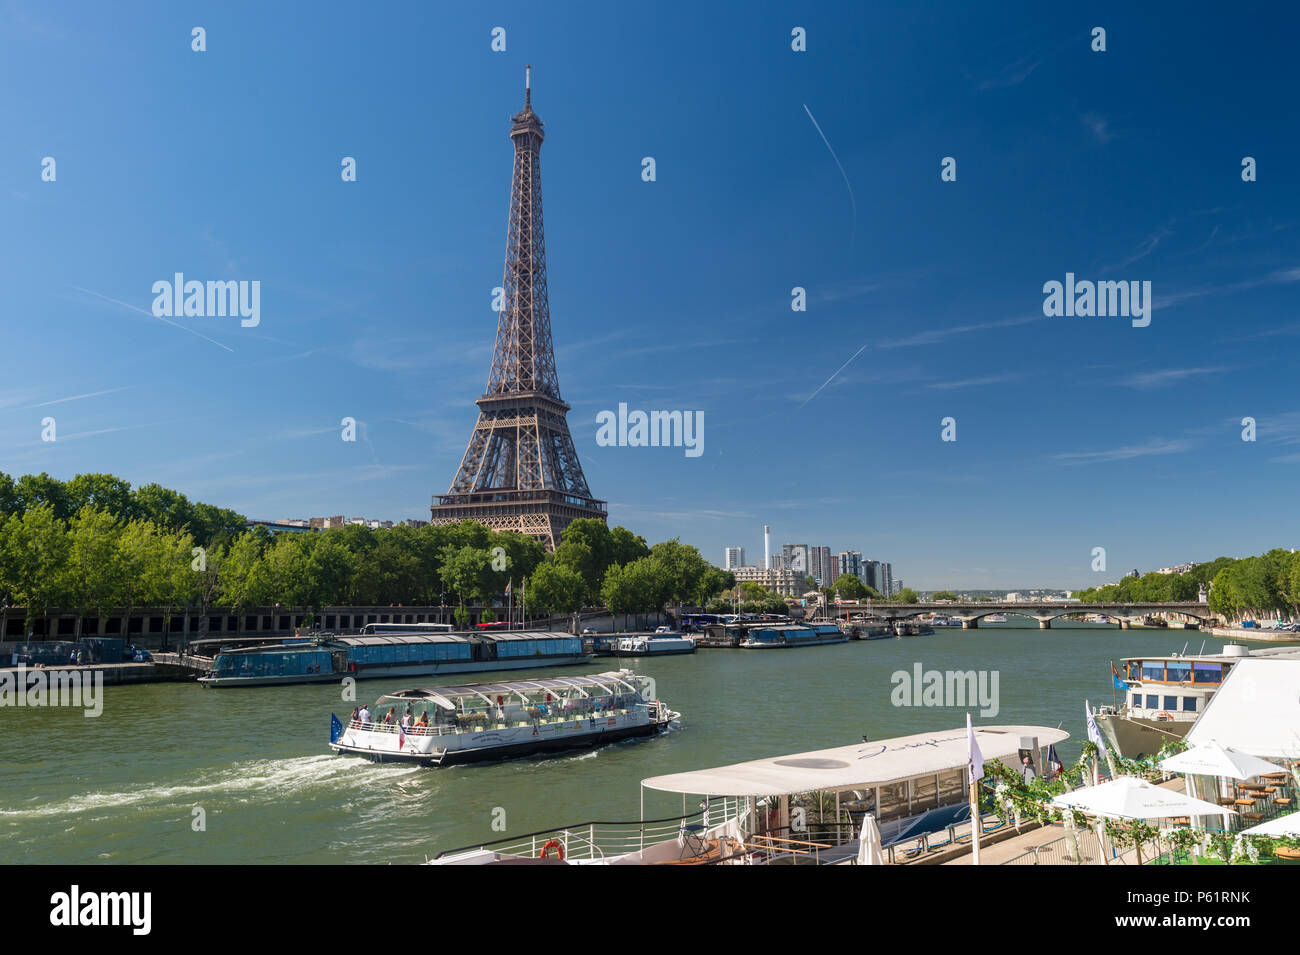 Paris, France - 23 June 2018: Bateau Mouche on the Seine river with Eiffel Tower in the background - Stock Image